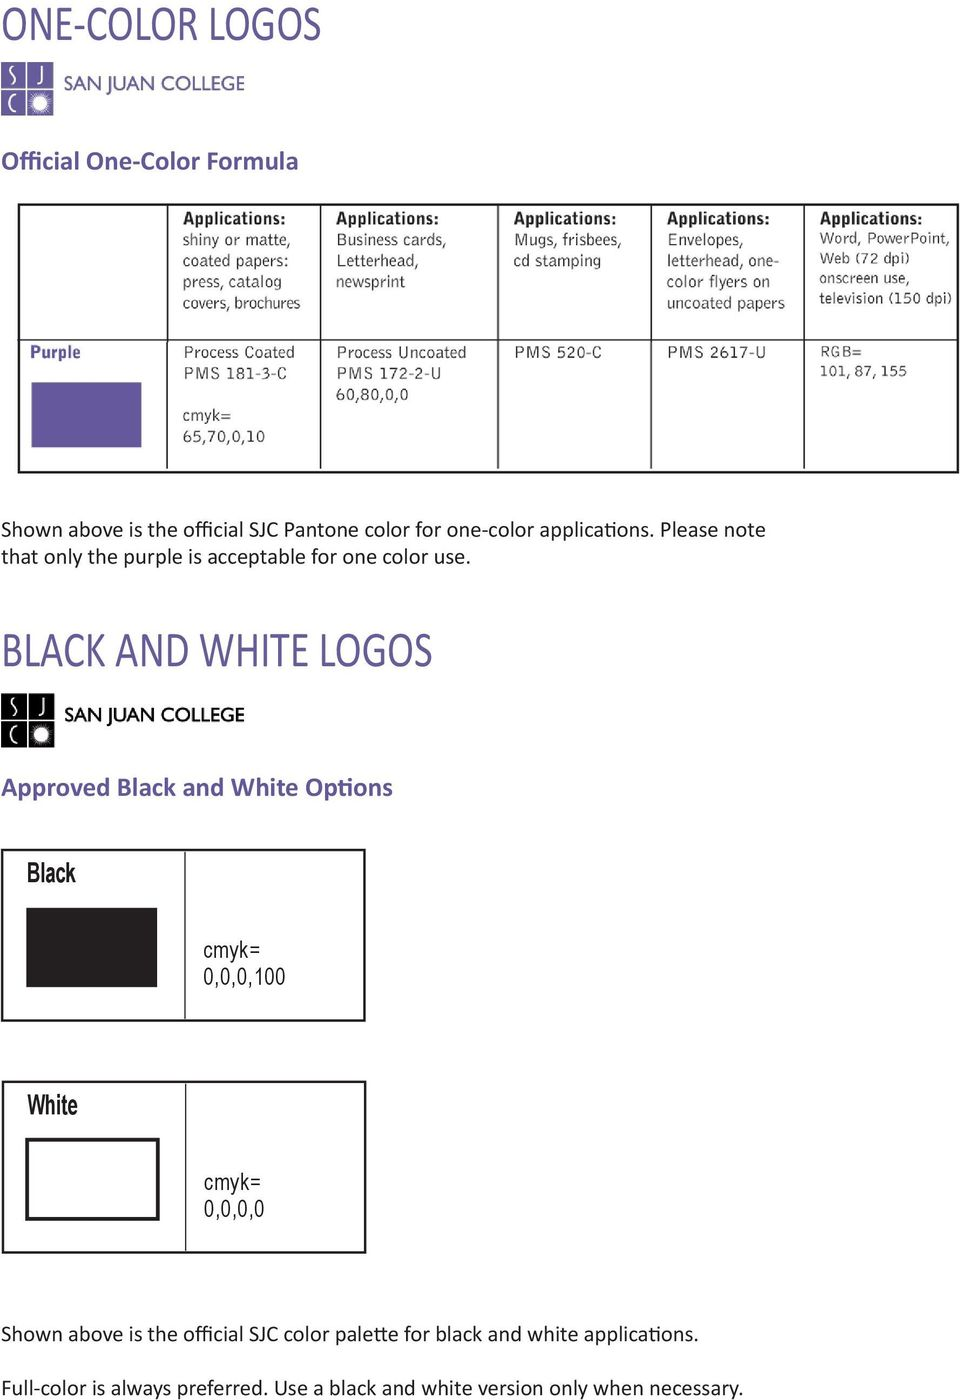 BLACK AND WHITE LOGOS Approved Black and White Options Black cmyk= 0,0,0,100 White cmyk= 0,0,0,0 Shown above